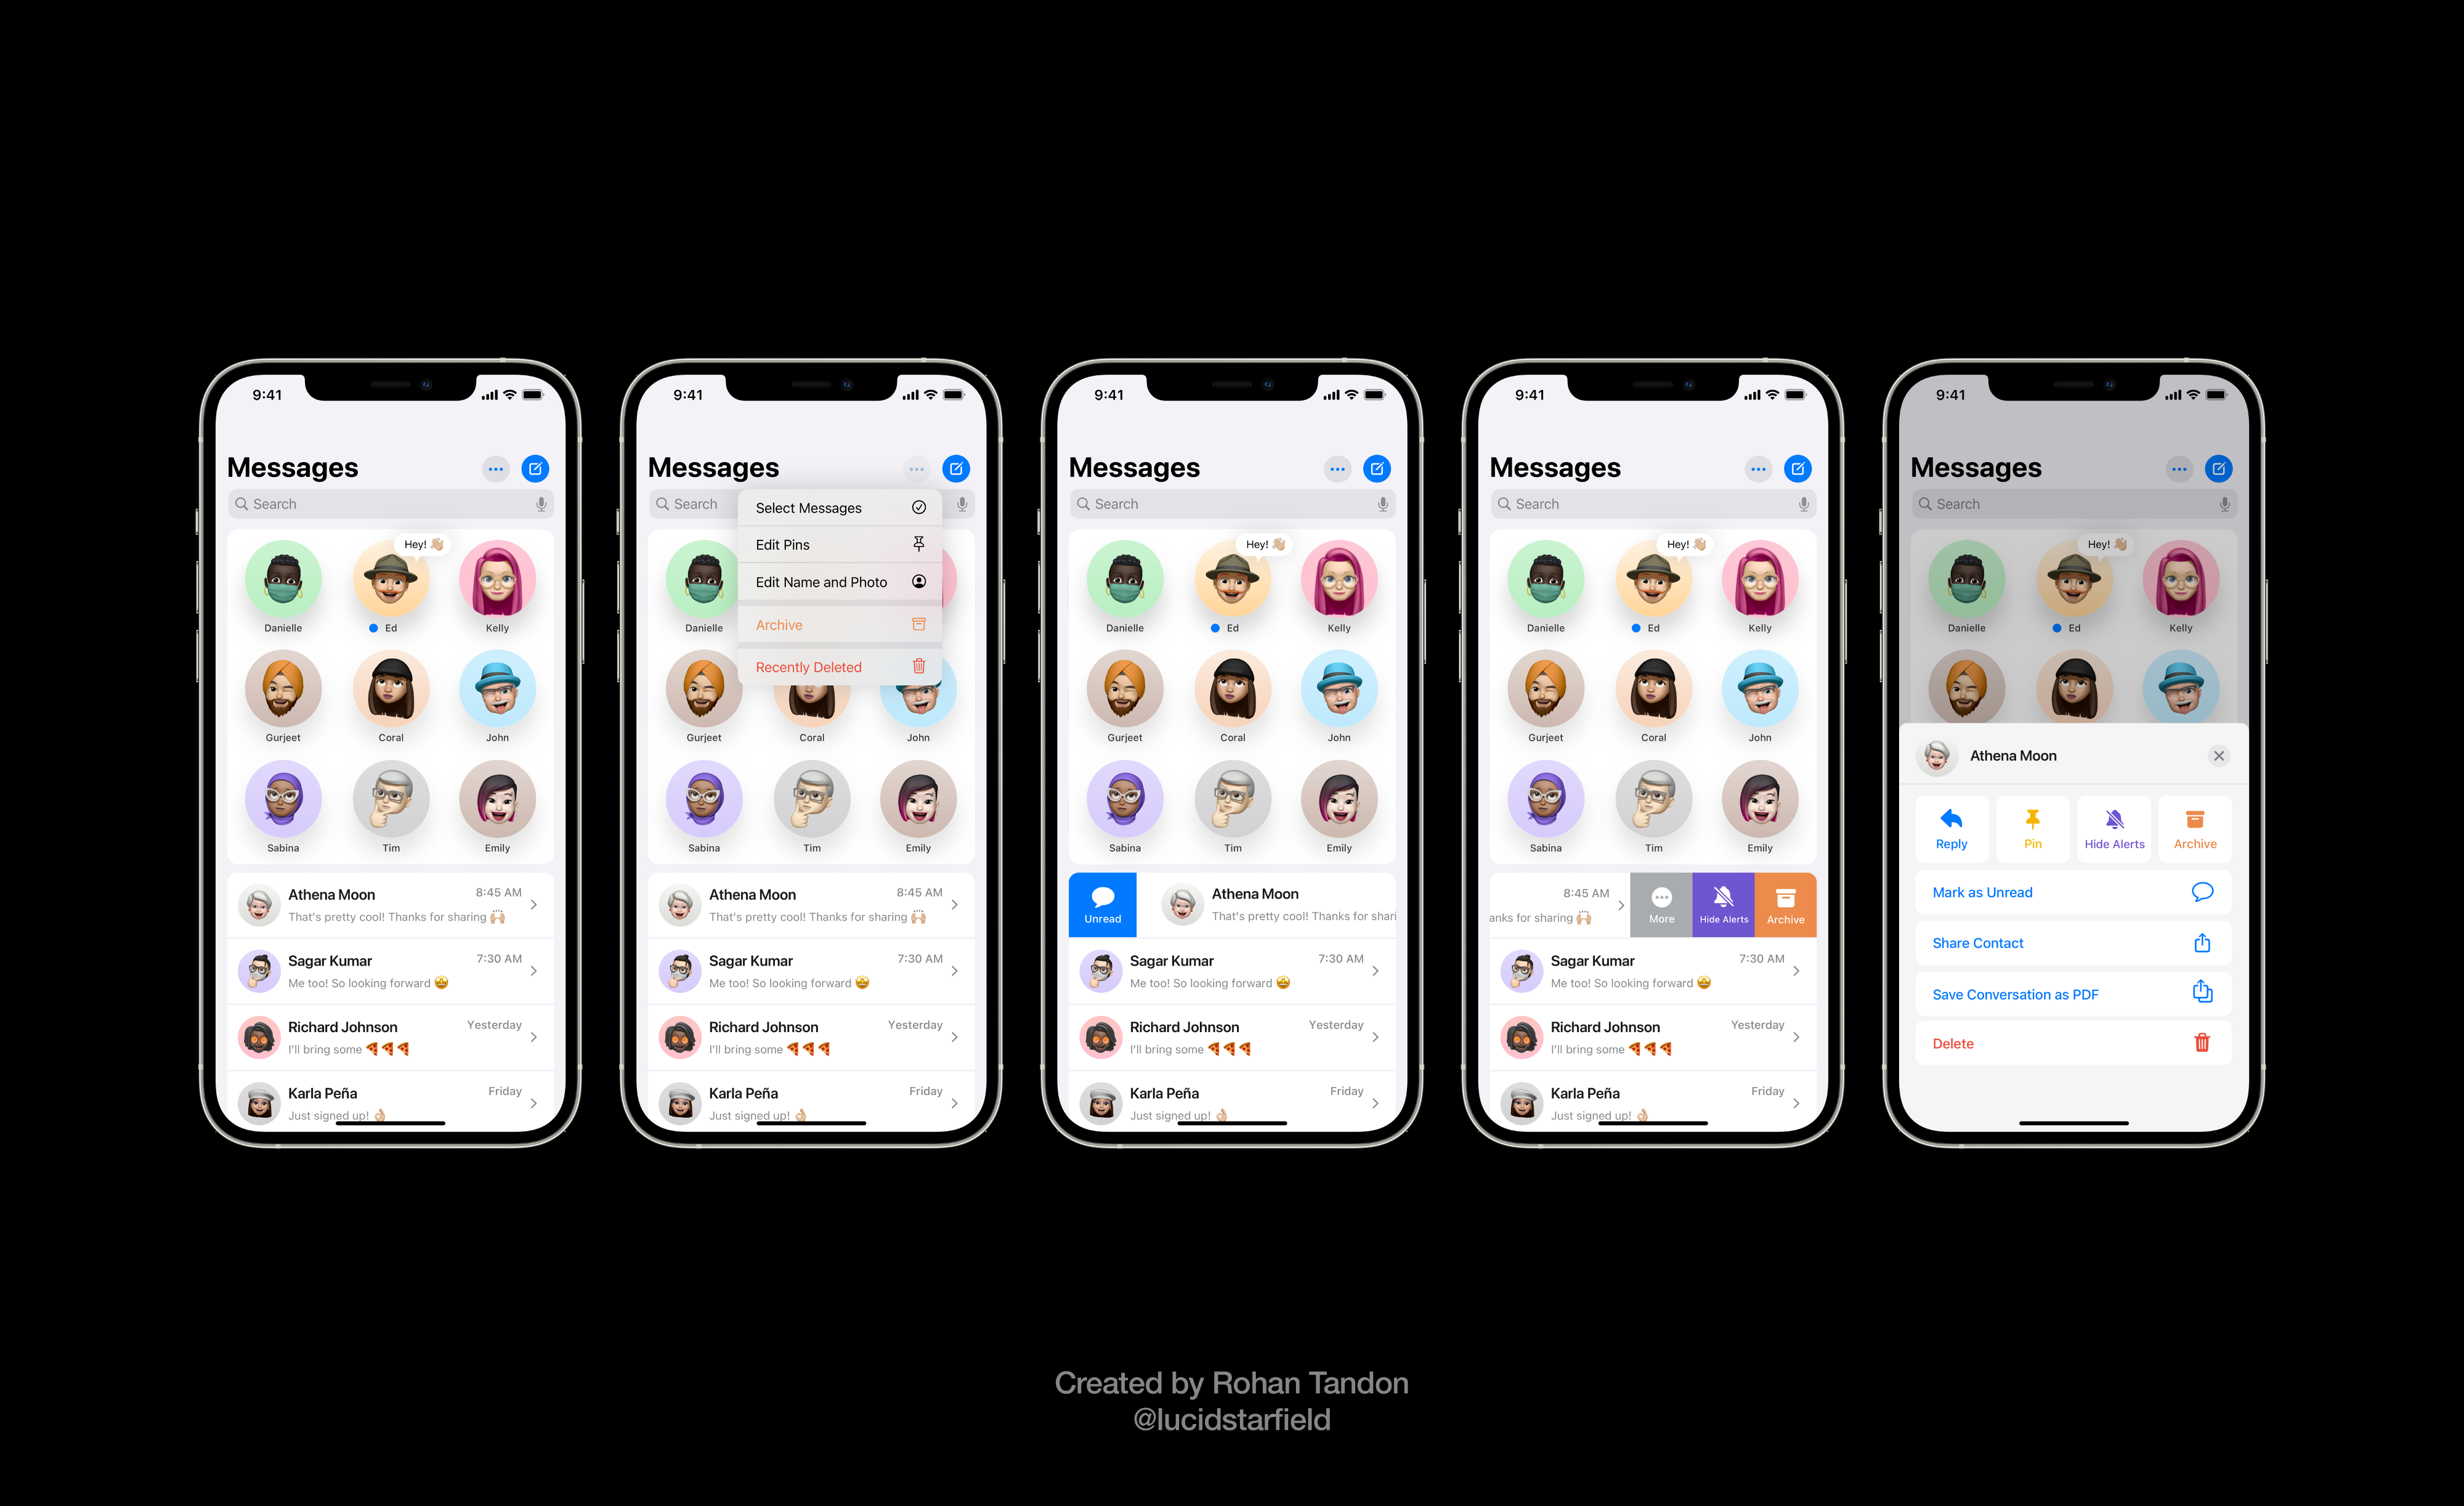 iOS 15 Aurora imagines the ability to archive messages, recover chat threads from a recently deleted folder, mark as unread, prominent compose/manage controls, and an all-new menu that also allows for saving conversation as PDF.